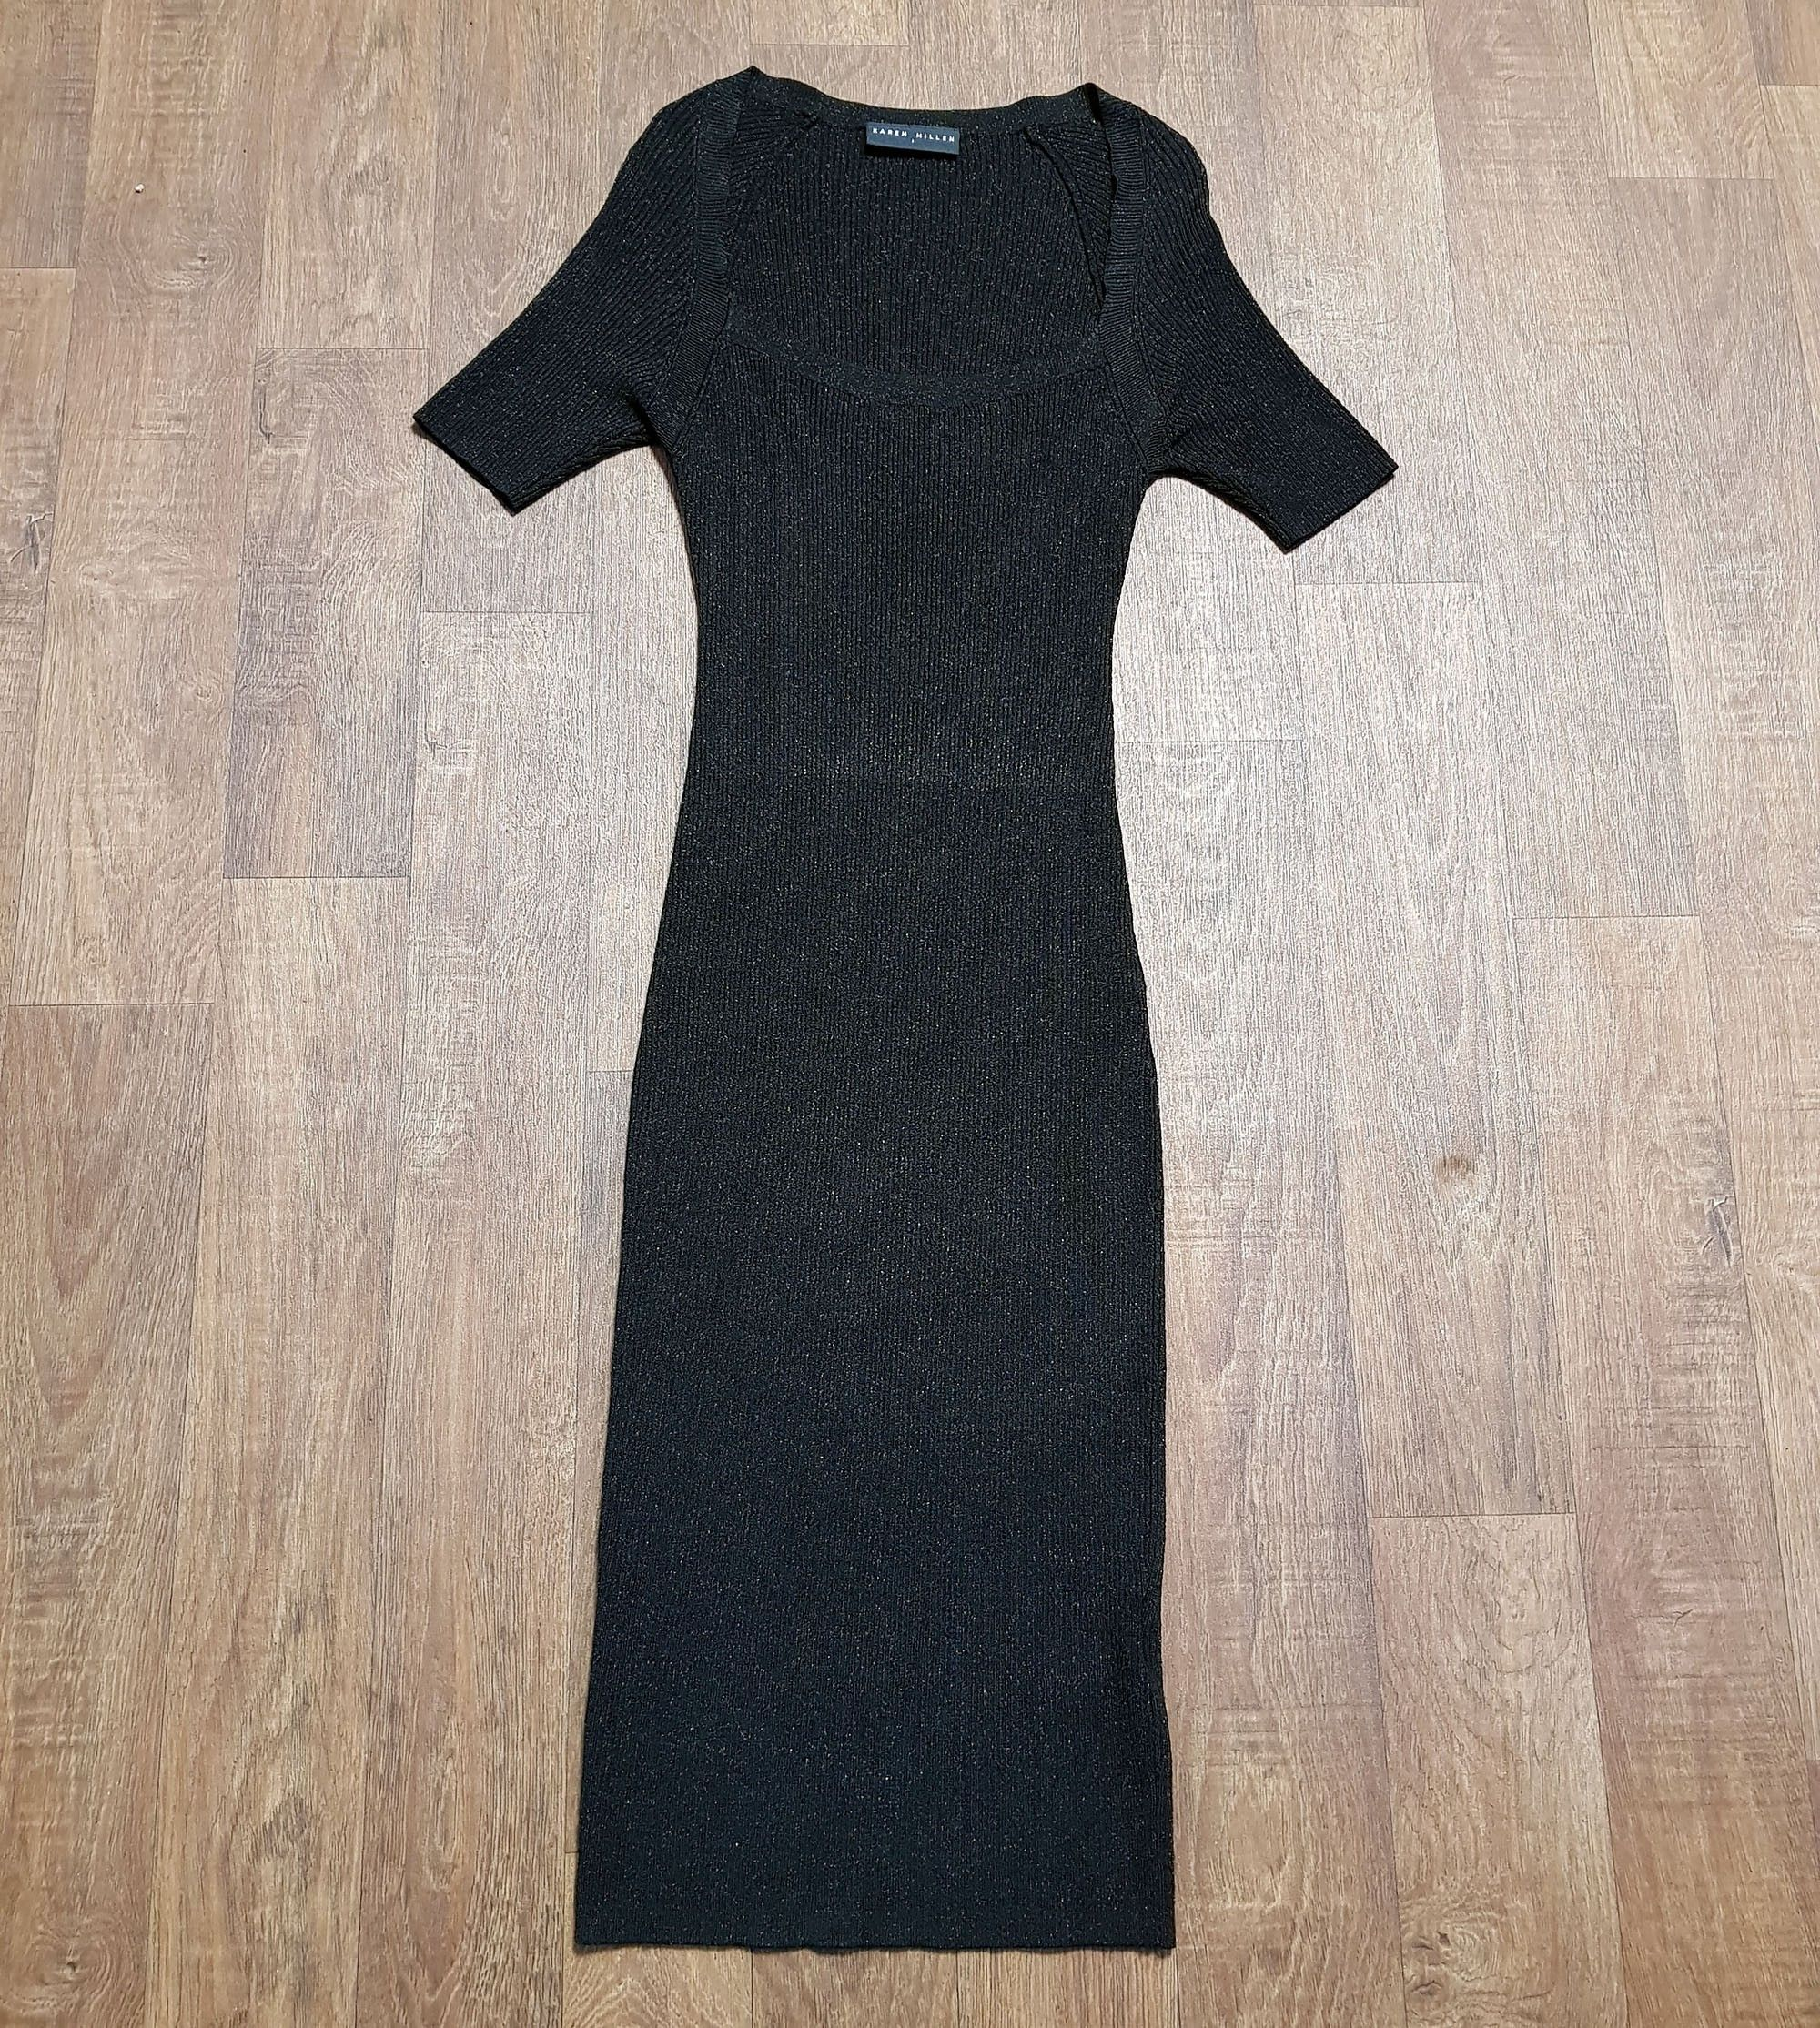 Vintage Knit Dress | Vintage Karen Millen Black Knitted Dress UK Size 6/8